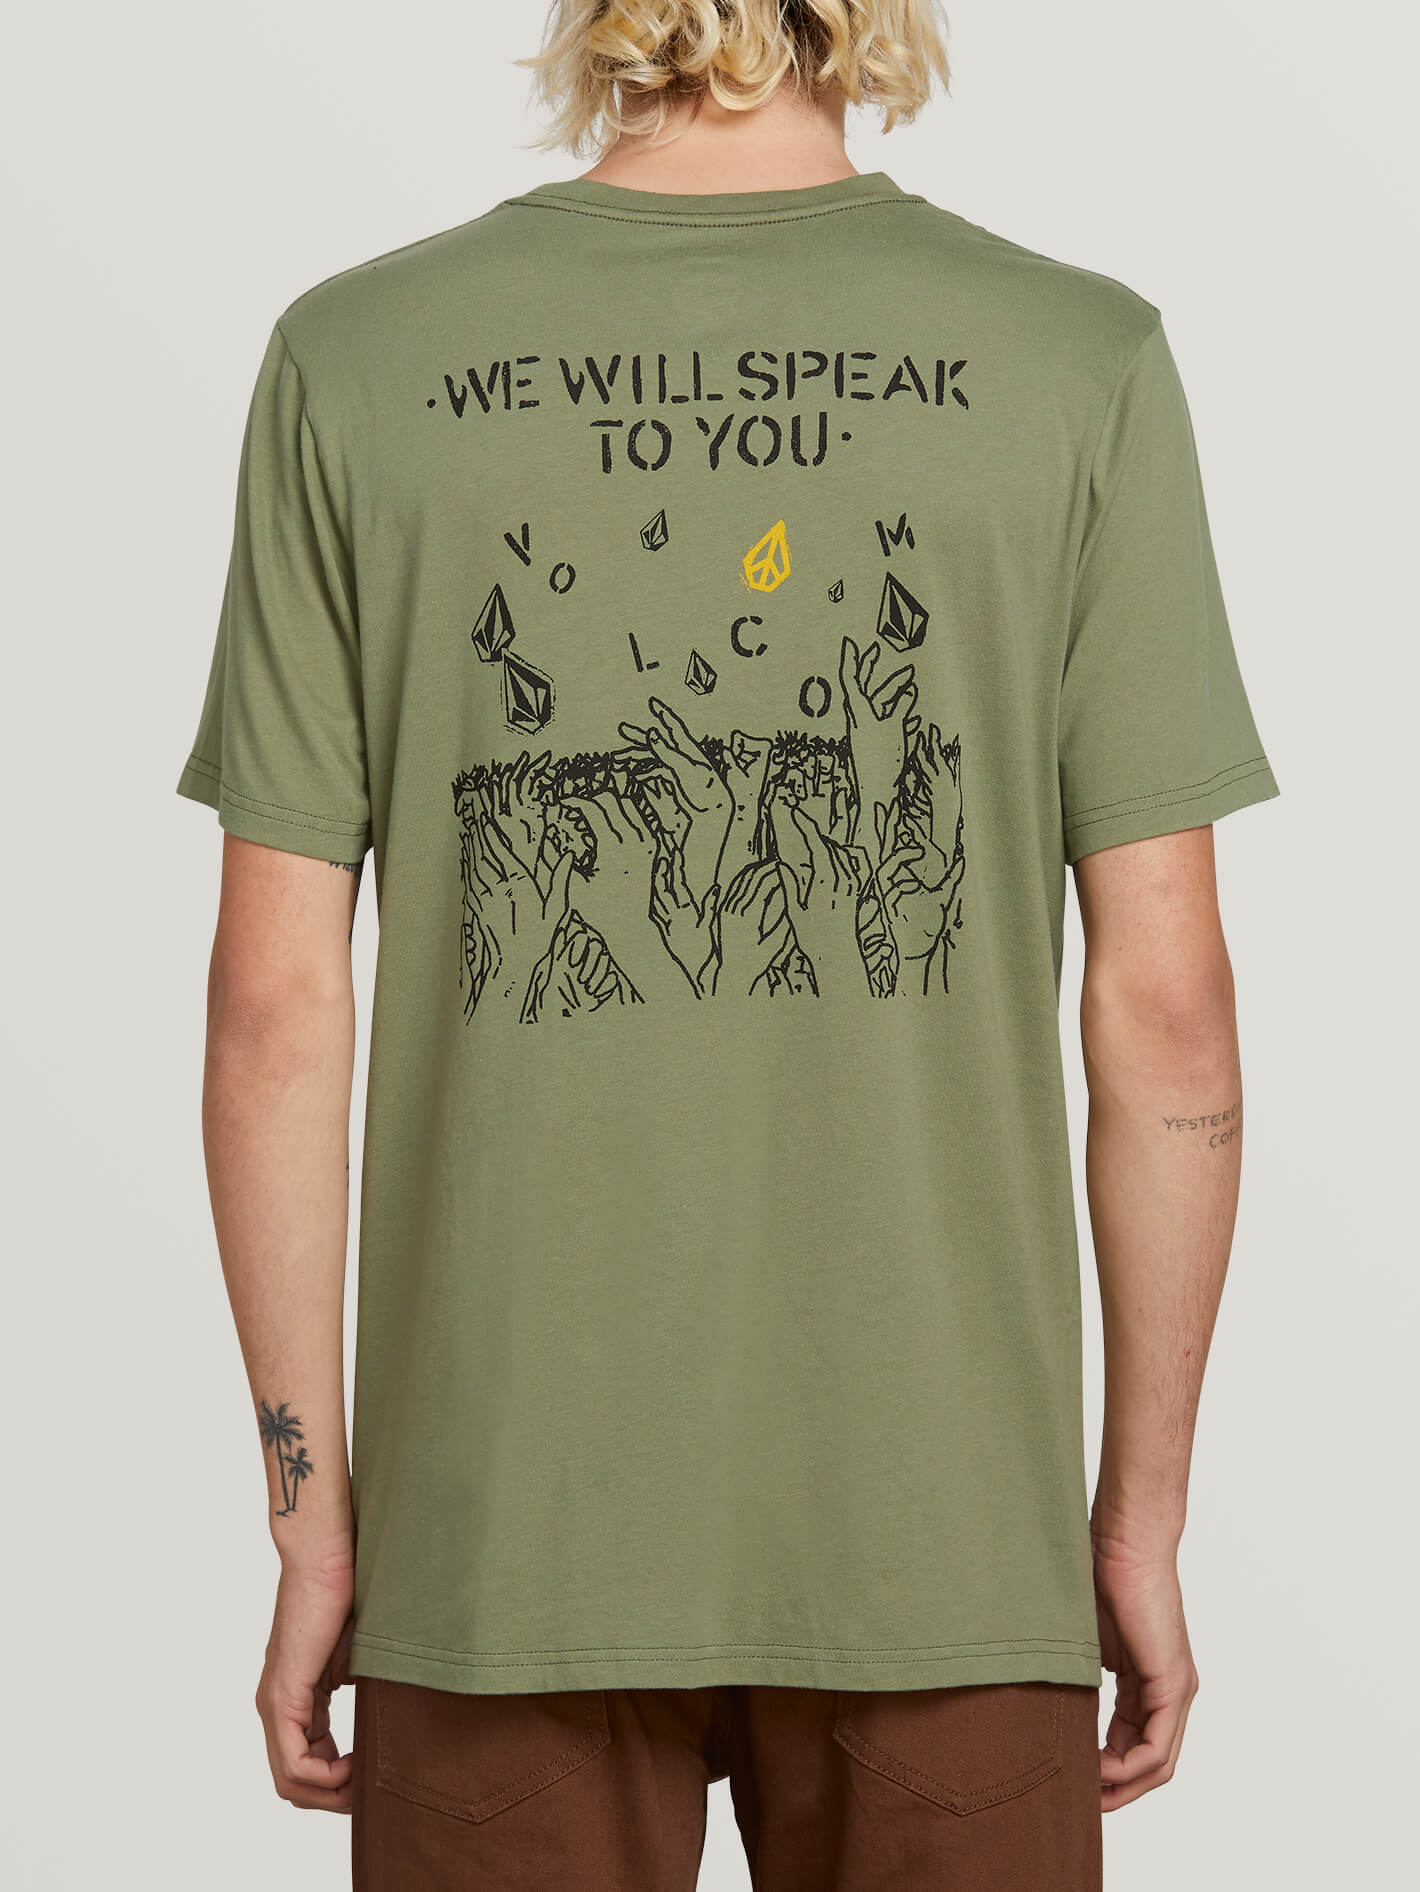 Crowd Control Short Sleeve Tee - Dusty Green 1023a86cb803